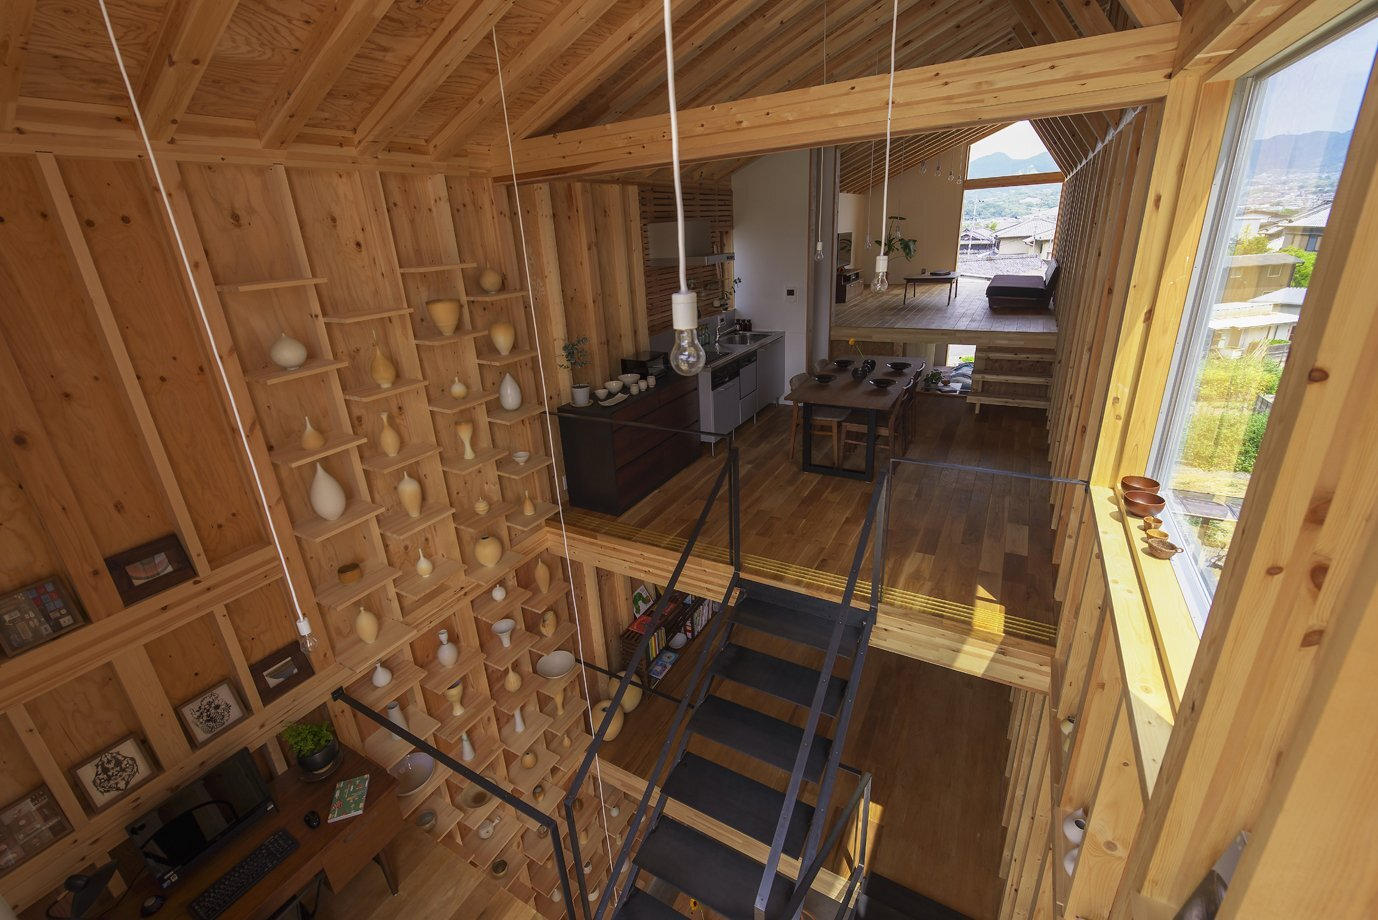 House for Pottery Festival - Office for Environment Architecture - Japan - Kitchen - Humble Homes